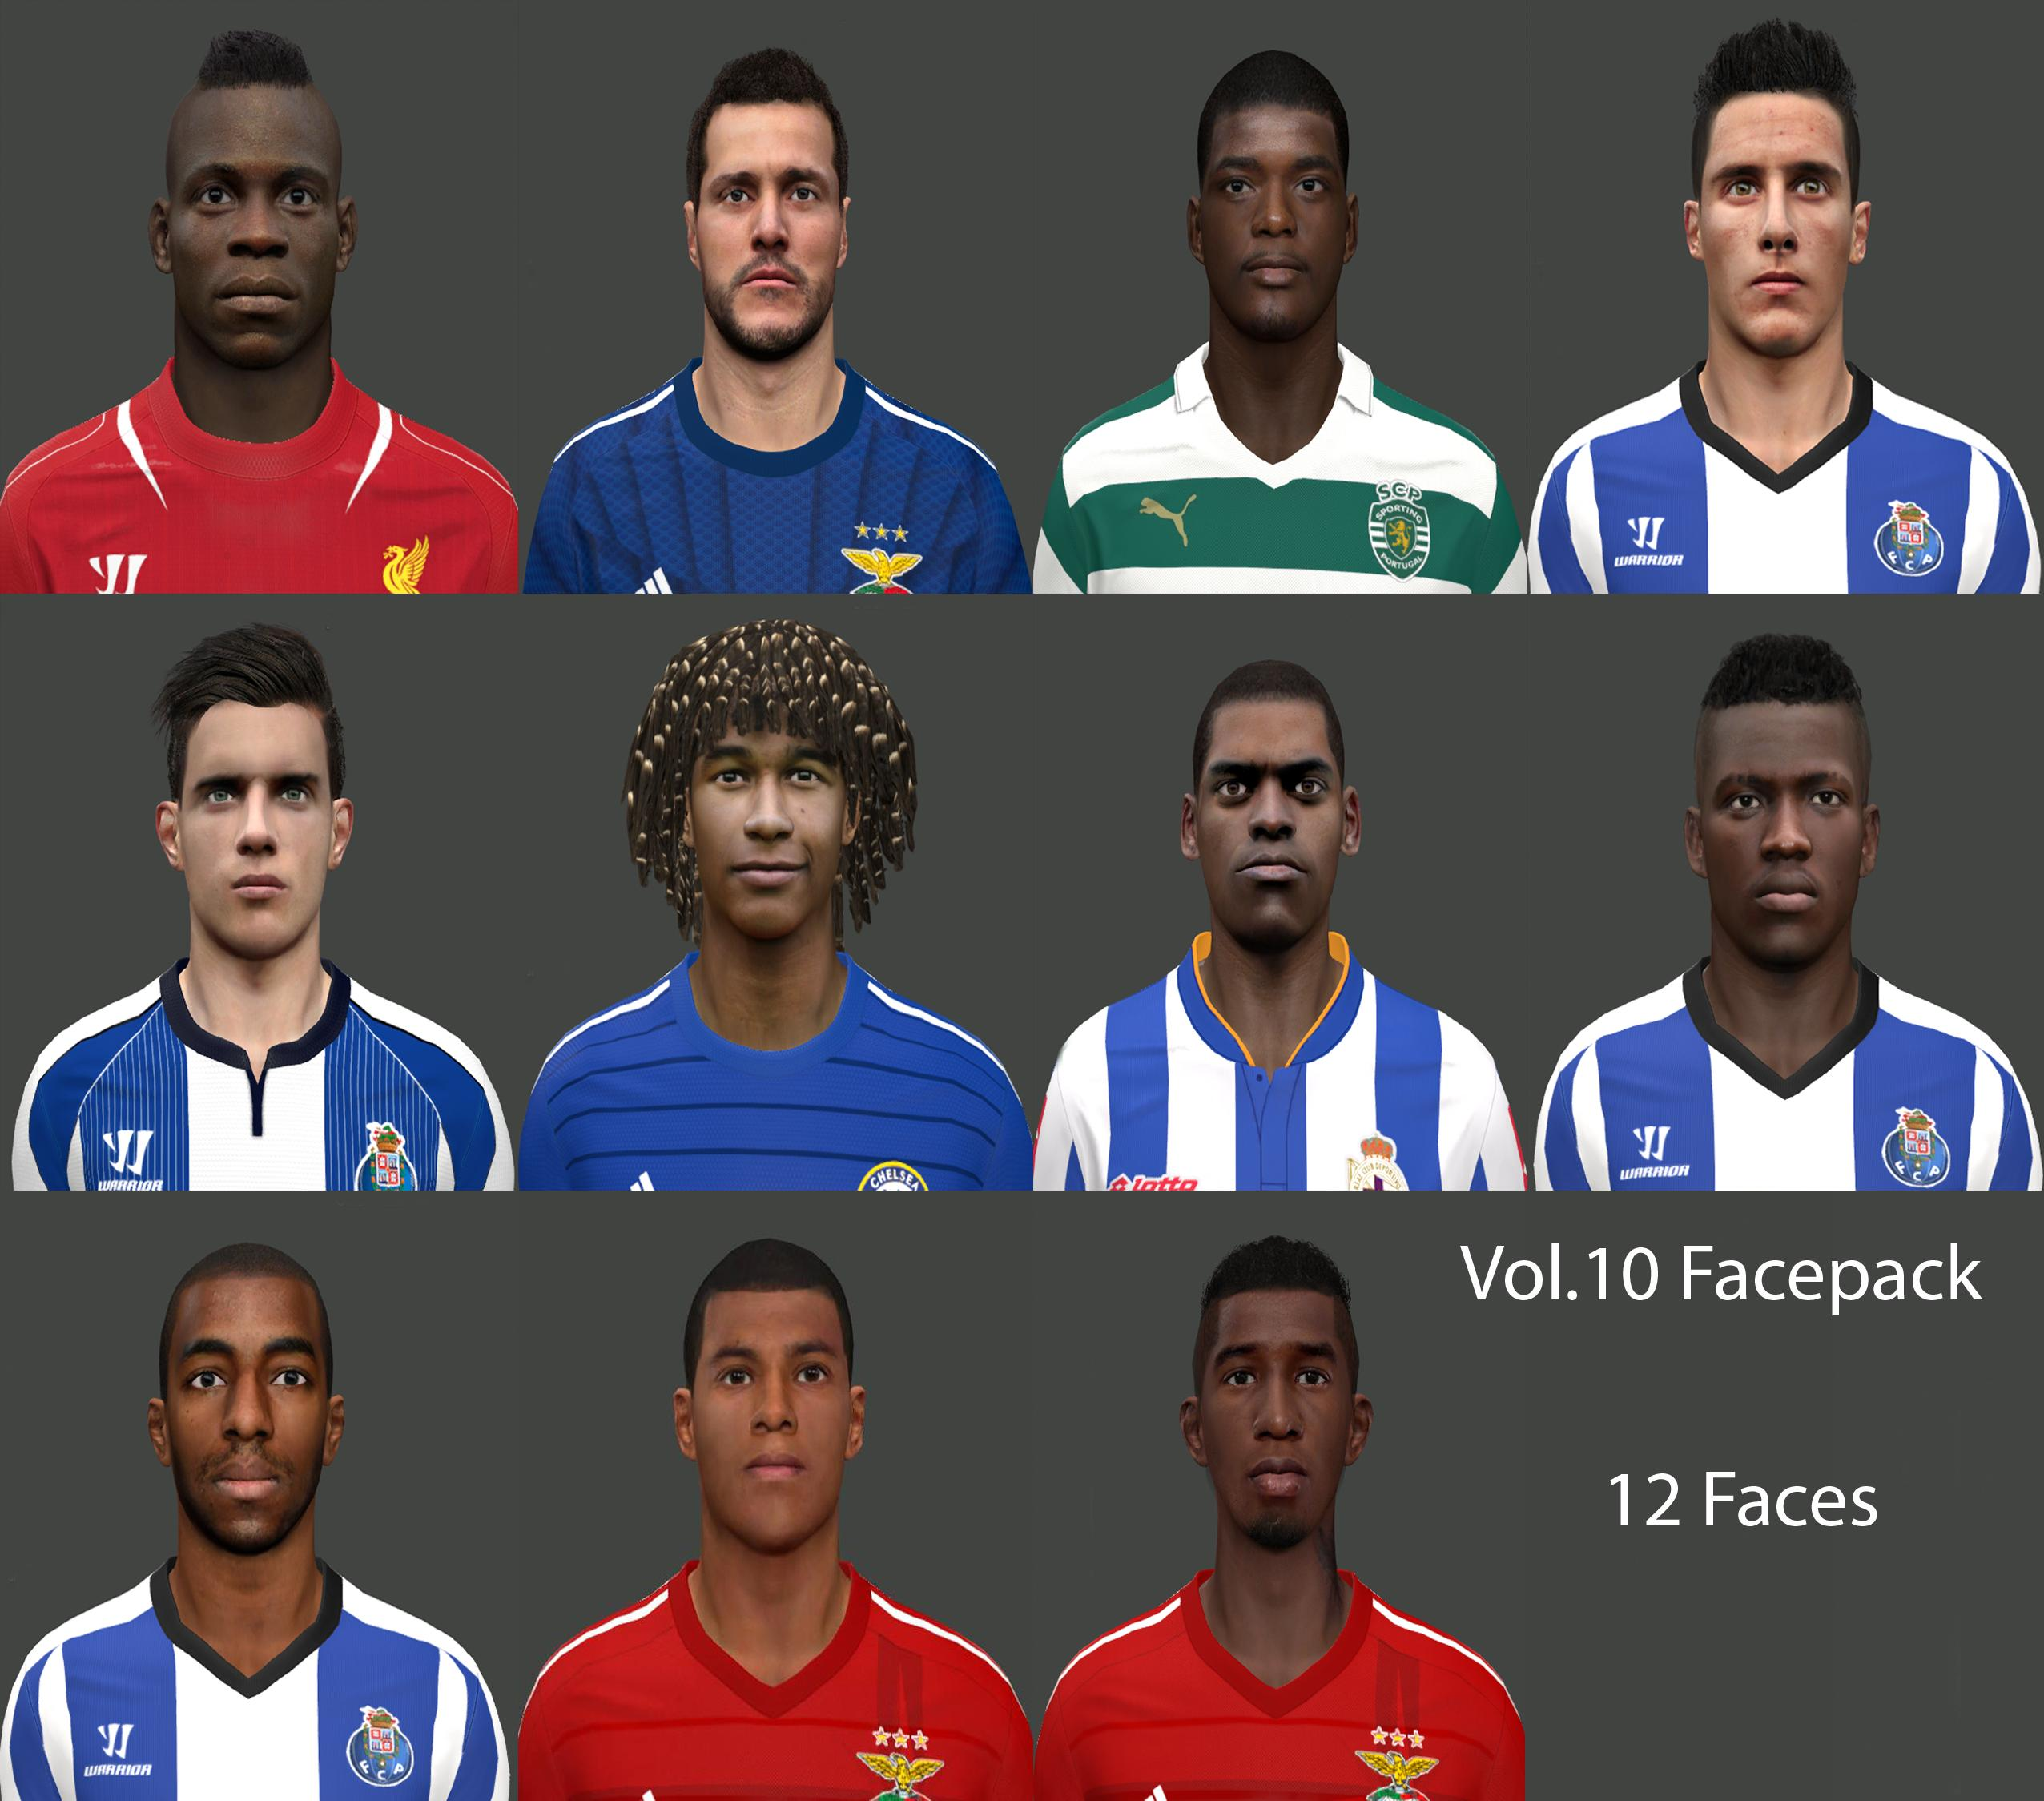 PES 2014 Facepack Vol.10 by miguelrioave